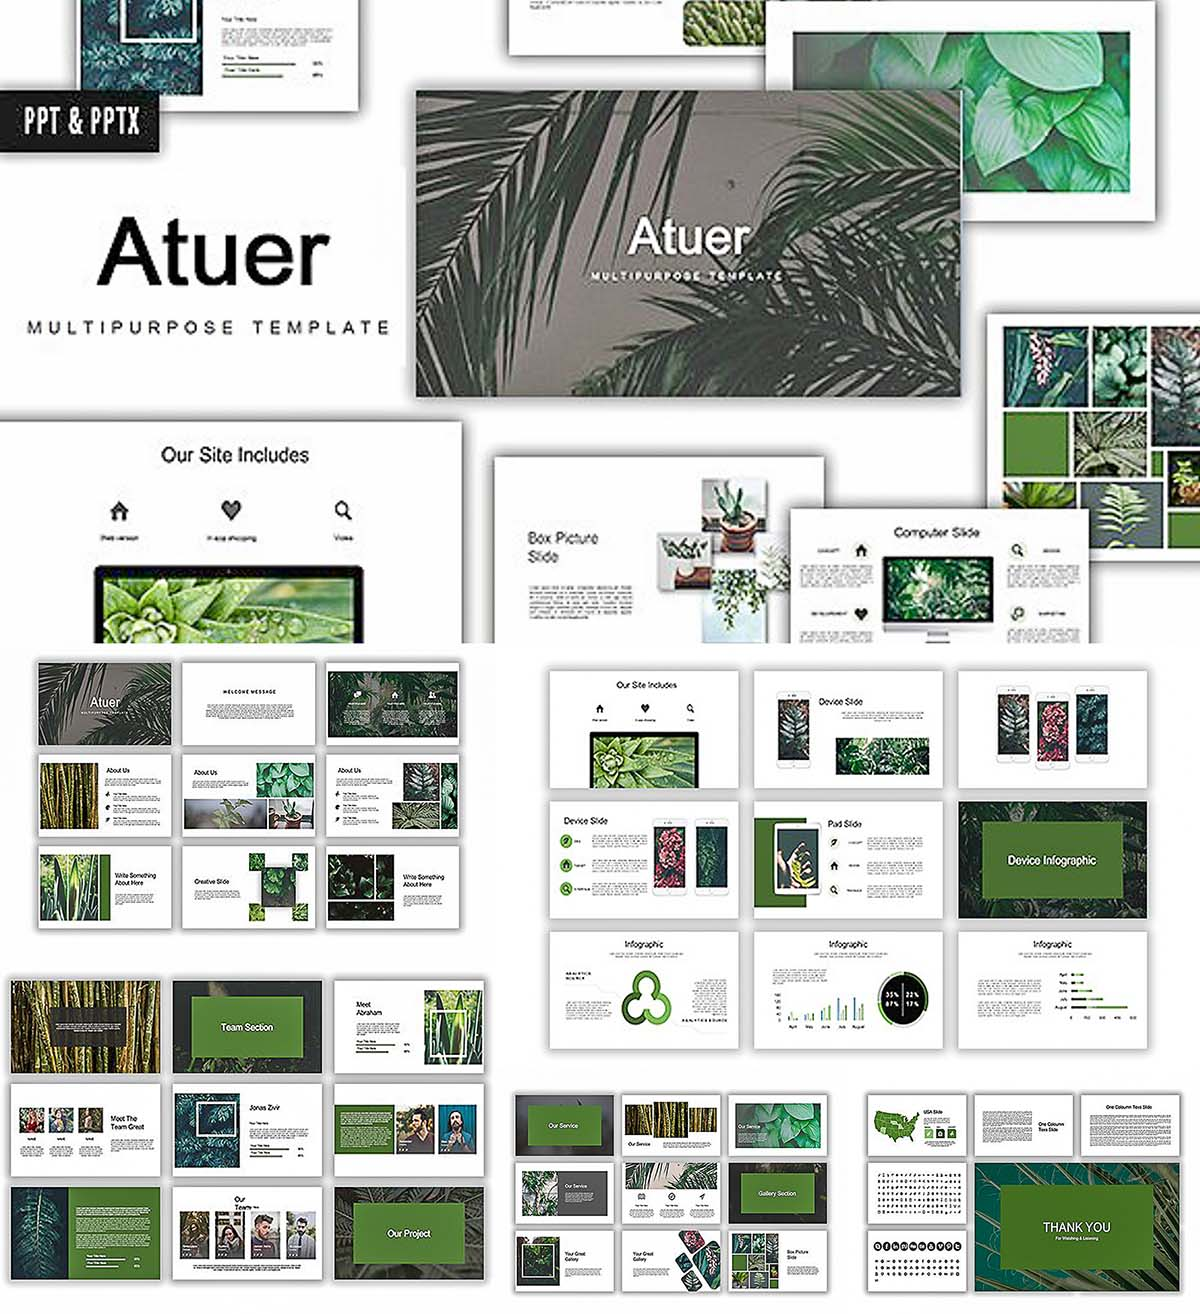 Atuer powerpoint presentation template